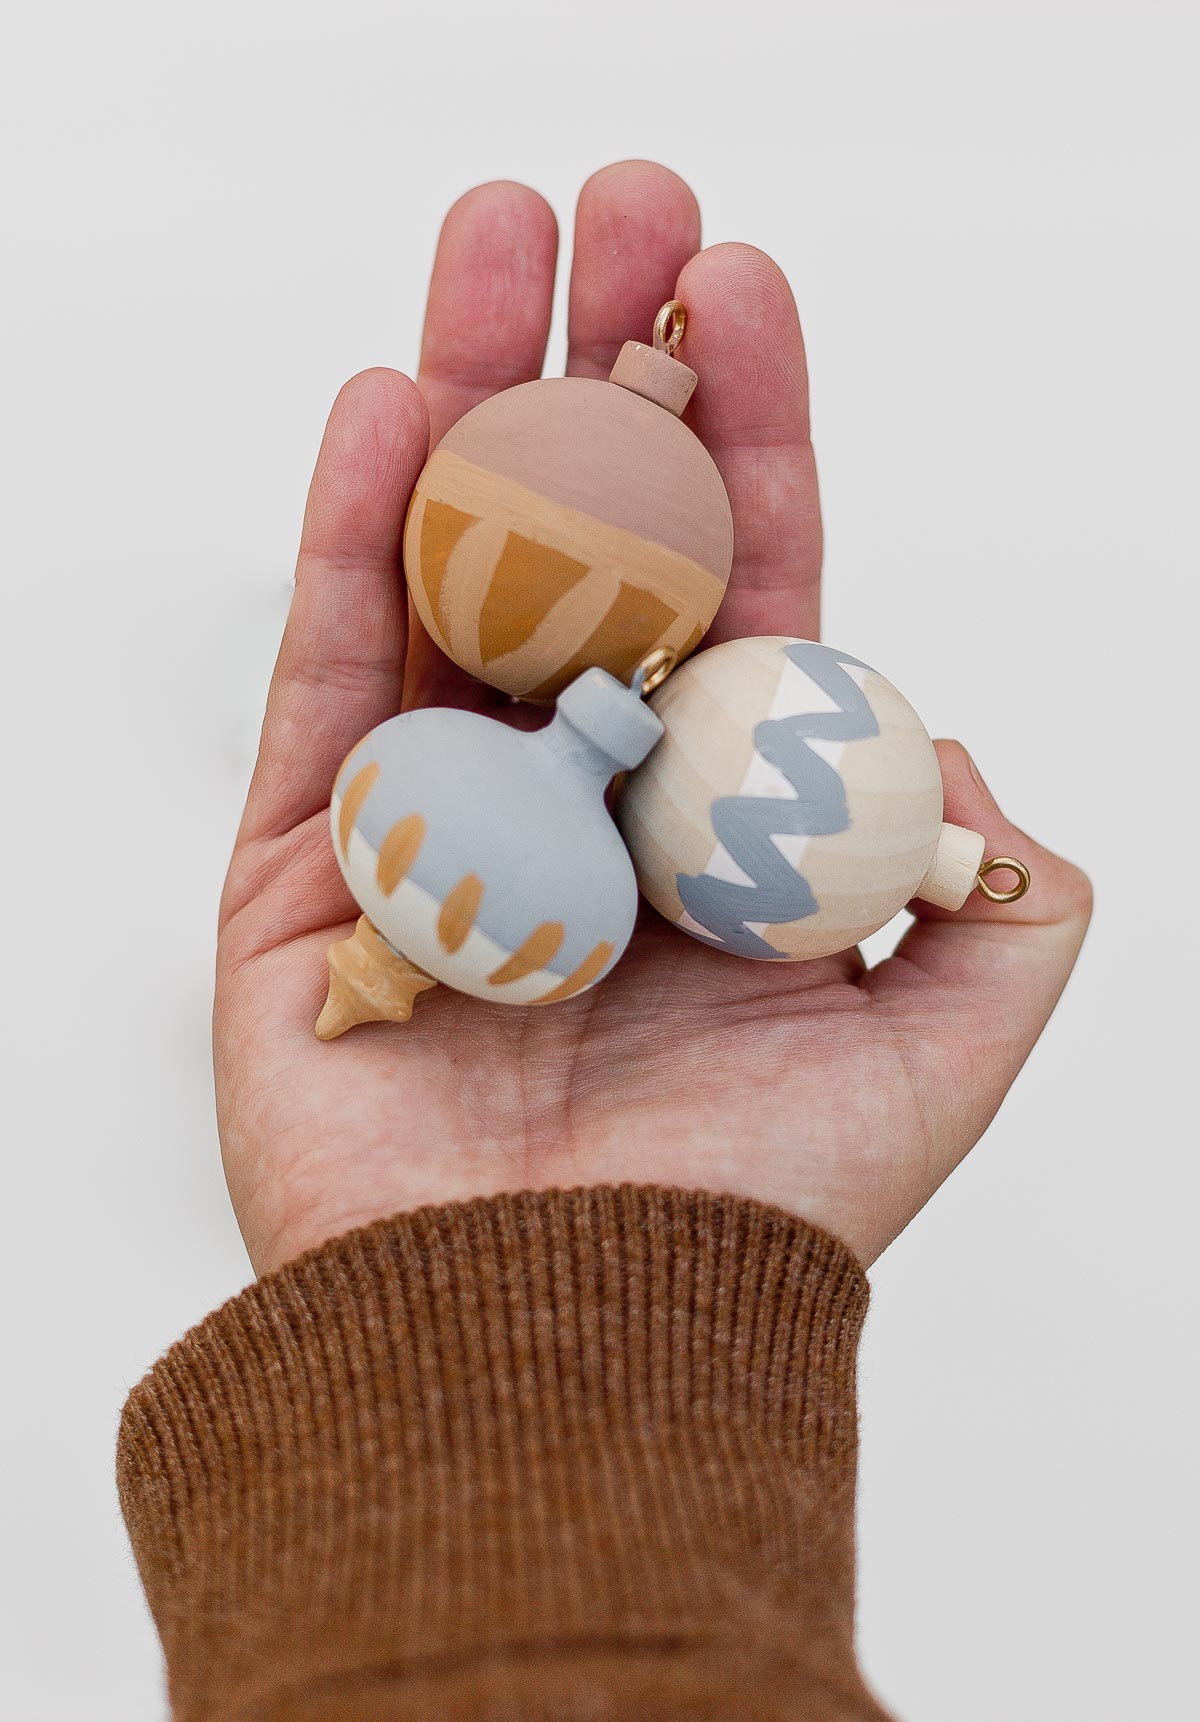 Holding DIY painted wood ornaments in the hand.